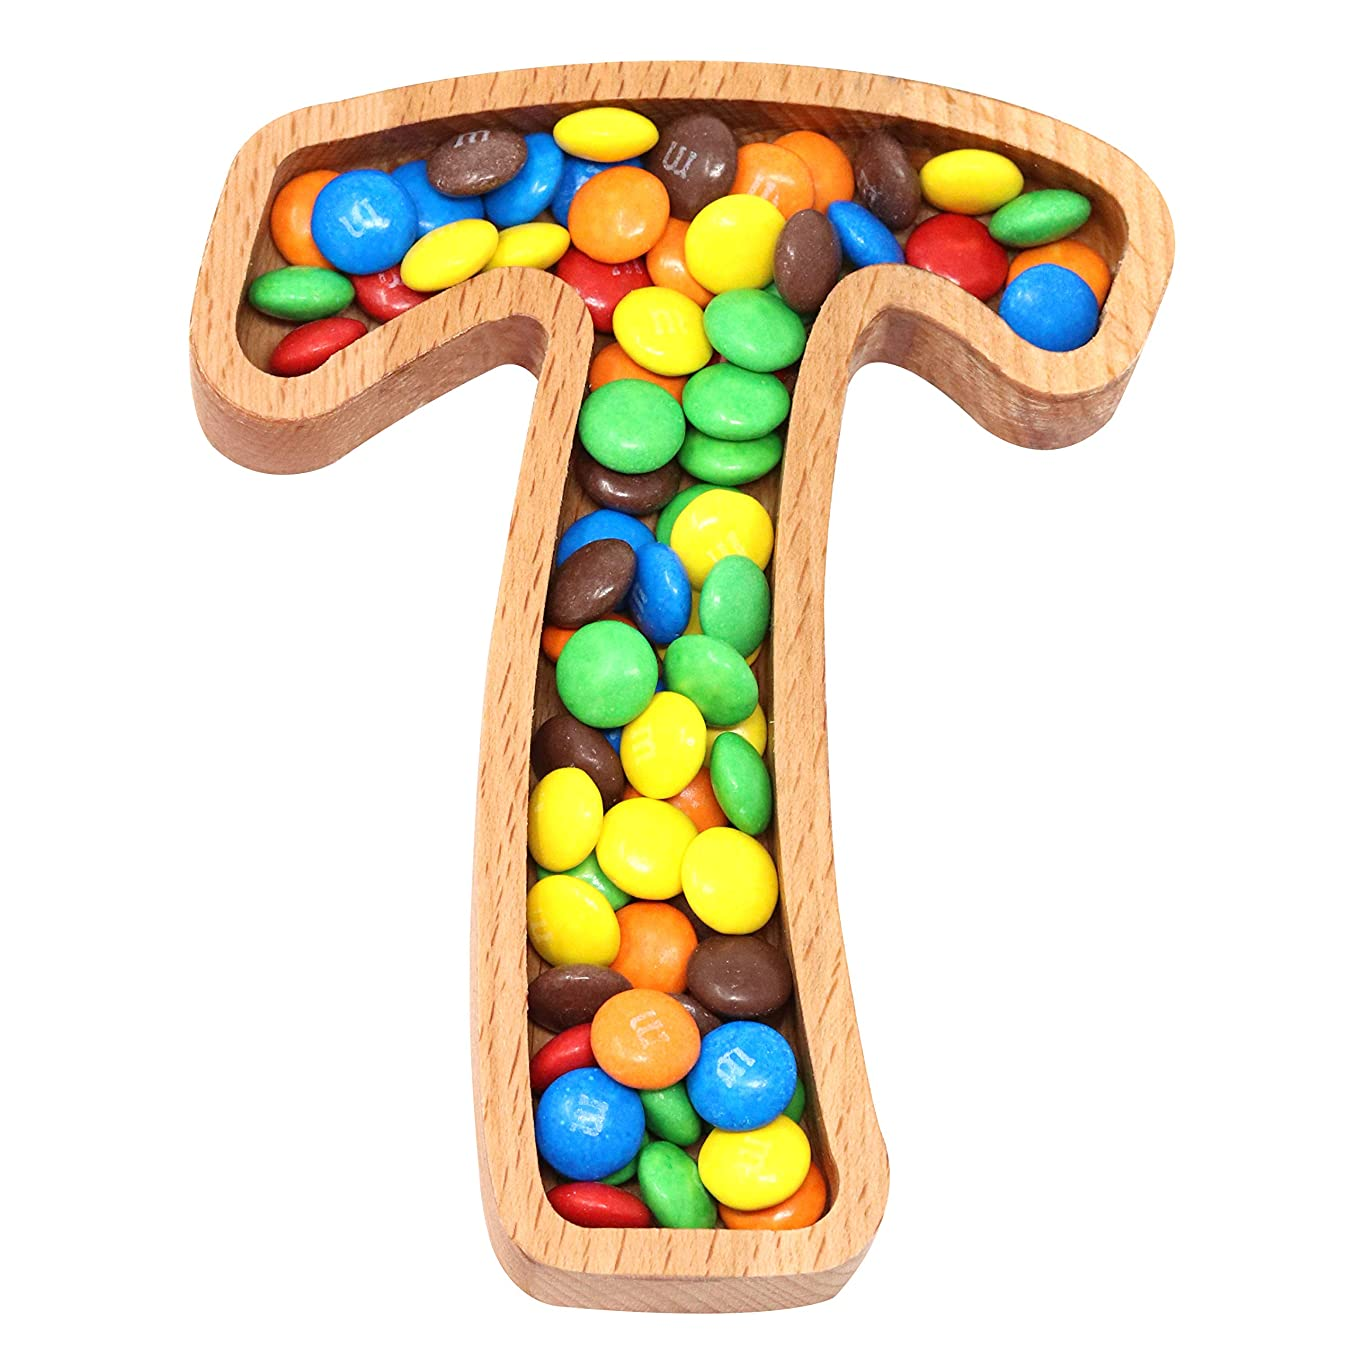 Wooden Letter T Candy Dish | Monogram Nut Bowl | Snack, Cookie, Cracker Serving Plate | Decorative Display, Home Accessory | Unique Gift Idea | for Date, Baby Shower, Birthday Party | Small Size